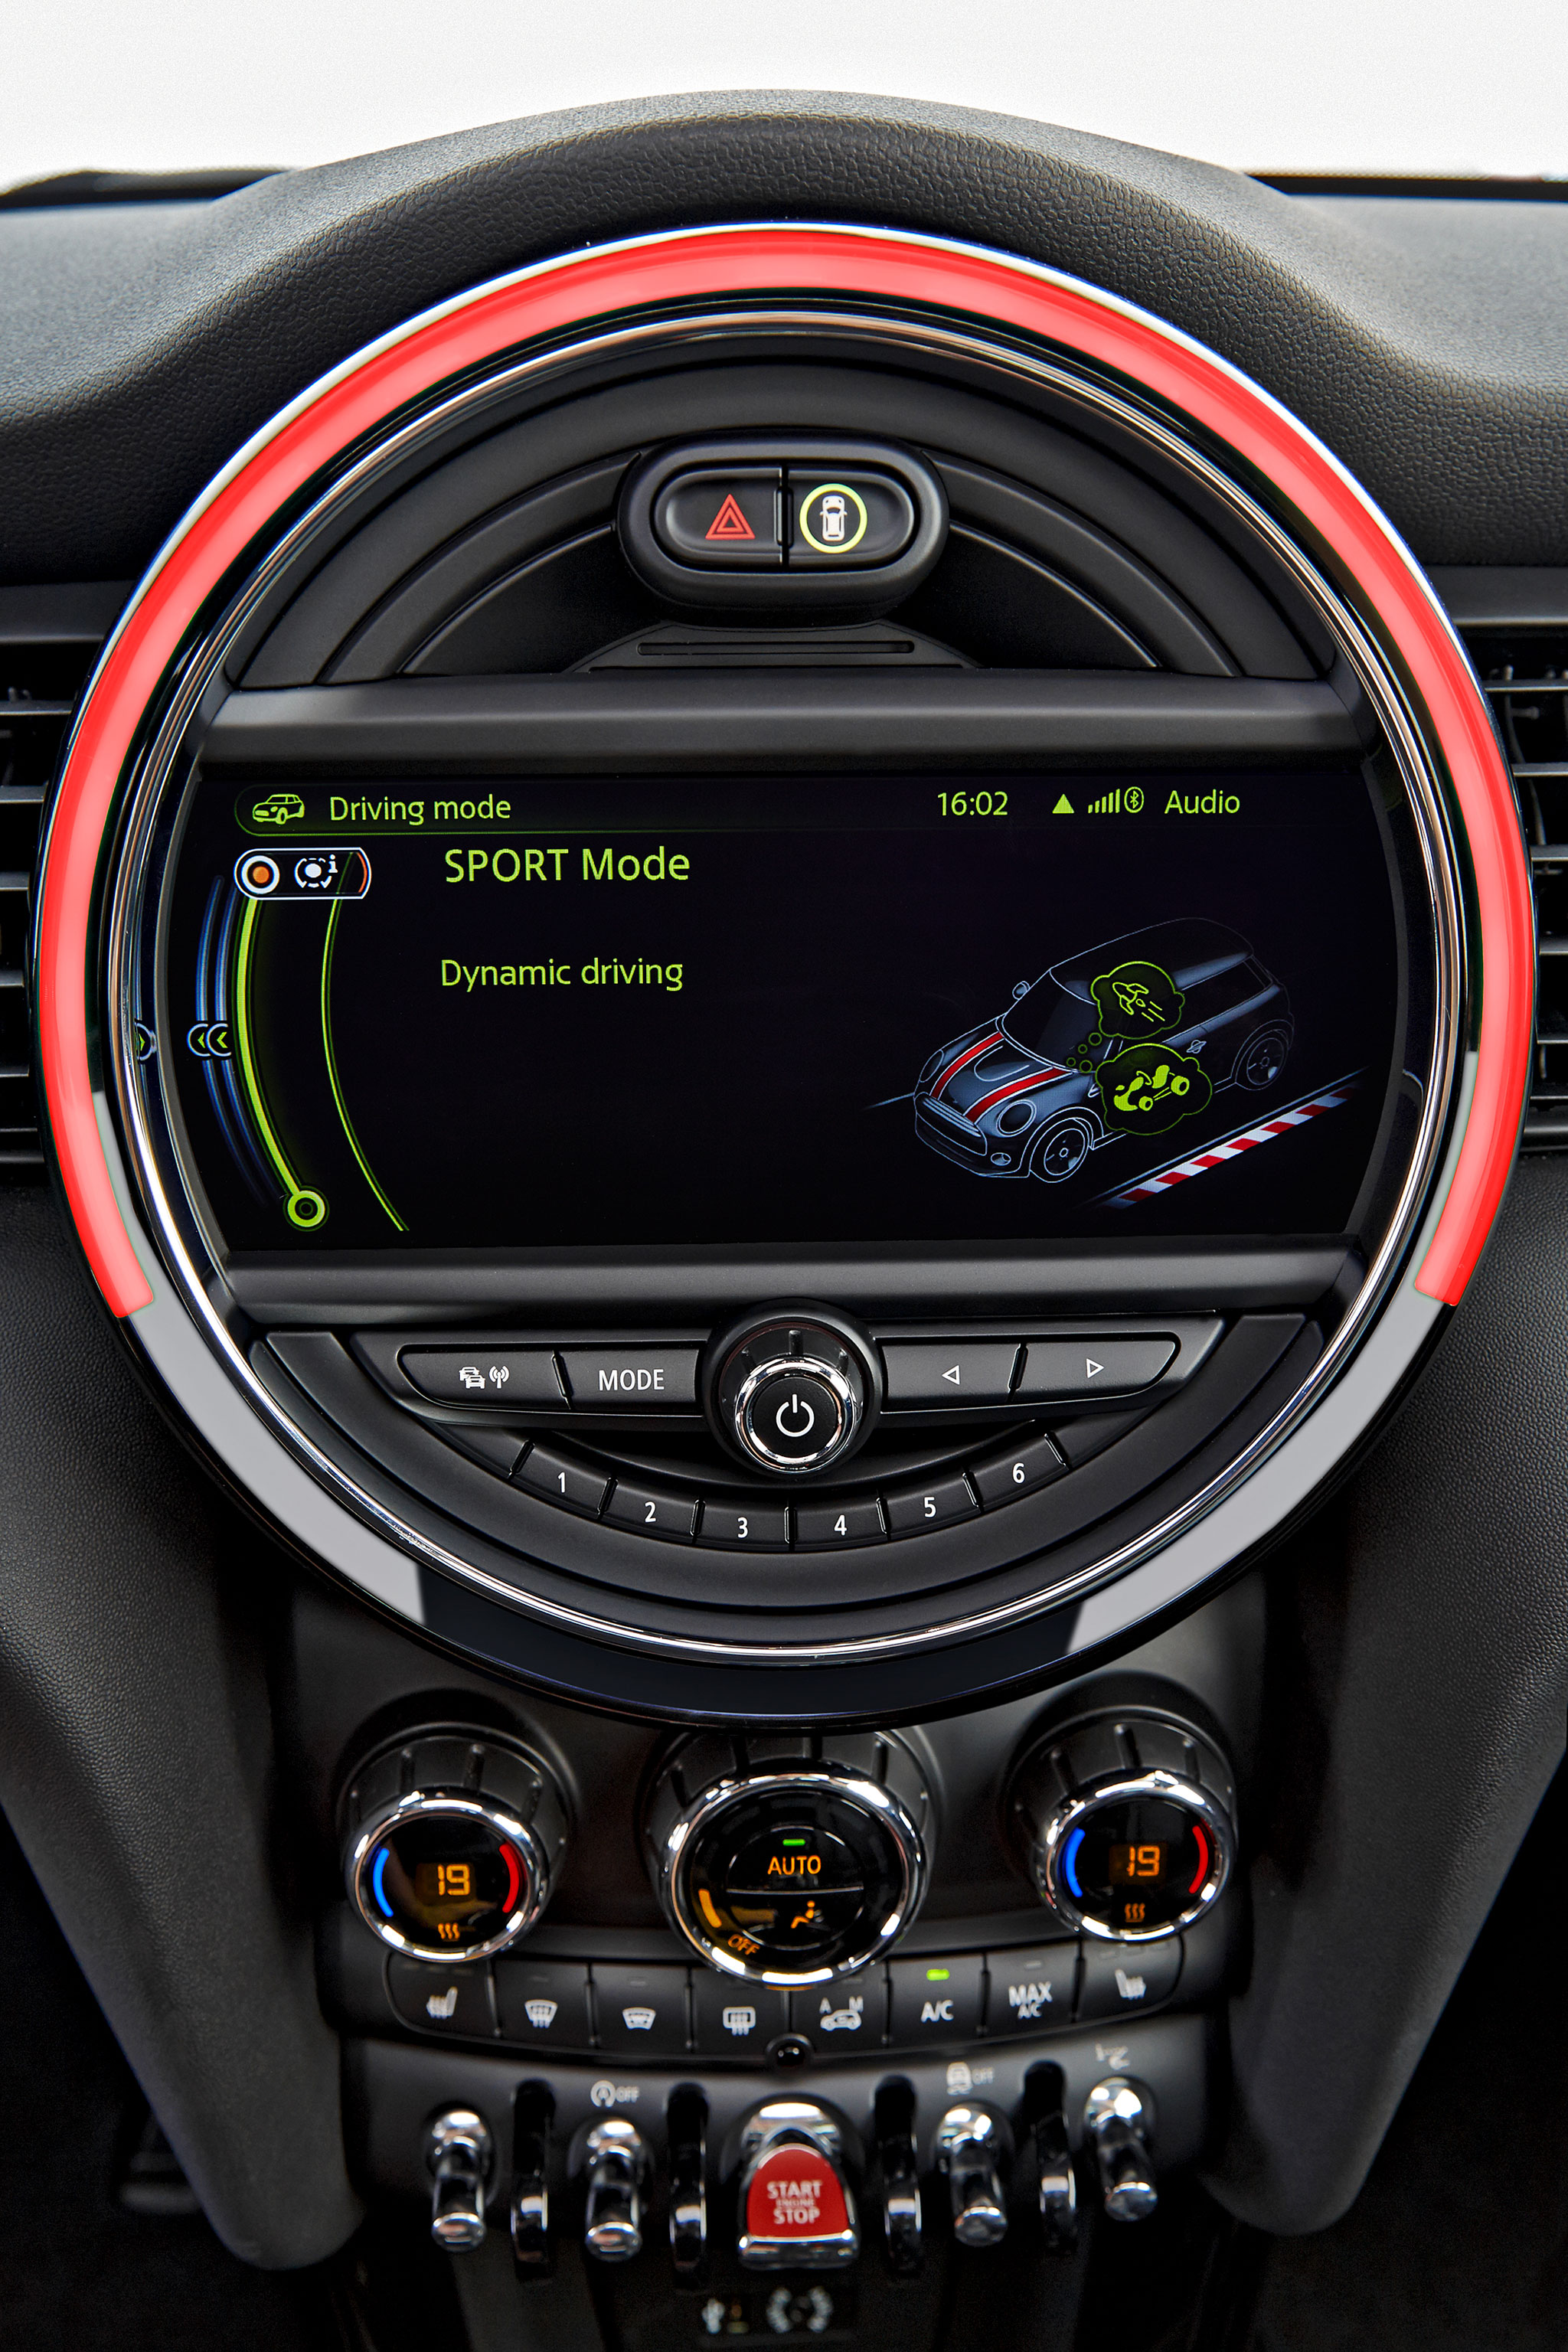 Report 2015 Mini Cooper Jcw To Get 231 Hp From New Engine Cruise Control Diagram 12 250